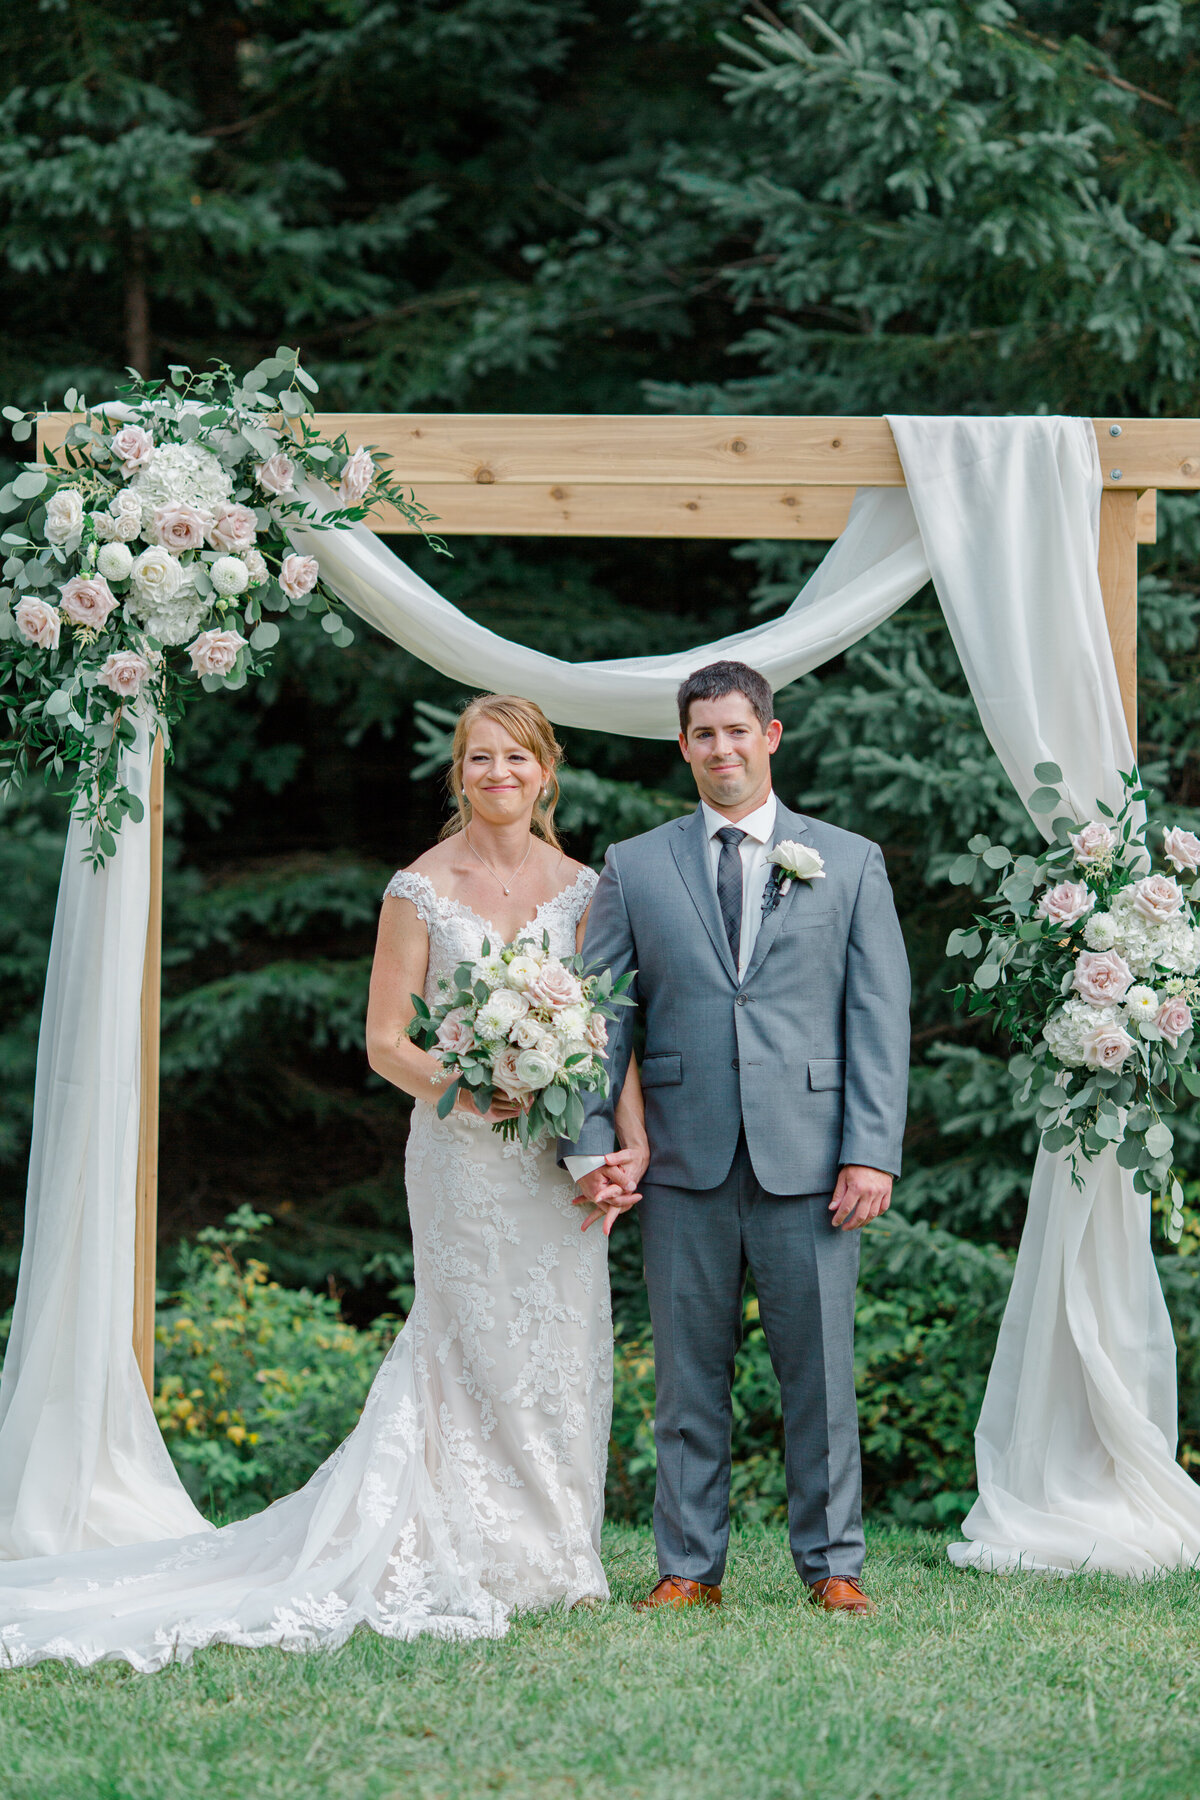 veronica-colin-wedding-woodlawn-grey-loft-studio-2020-136